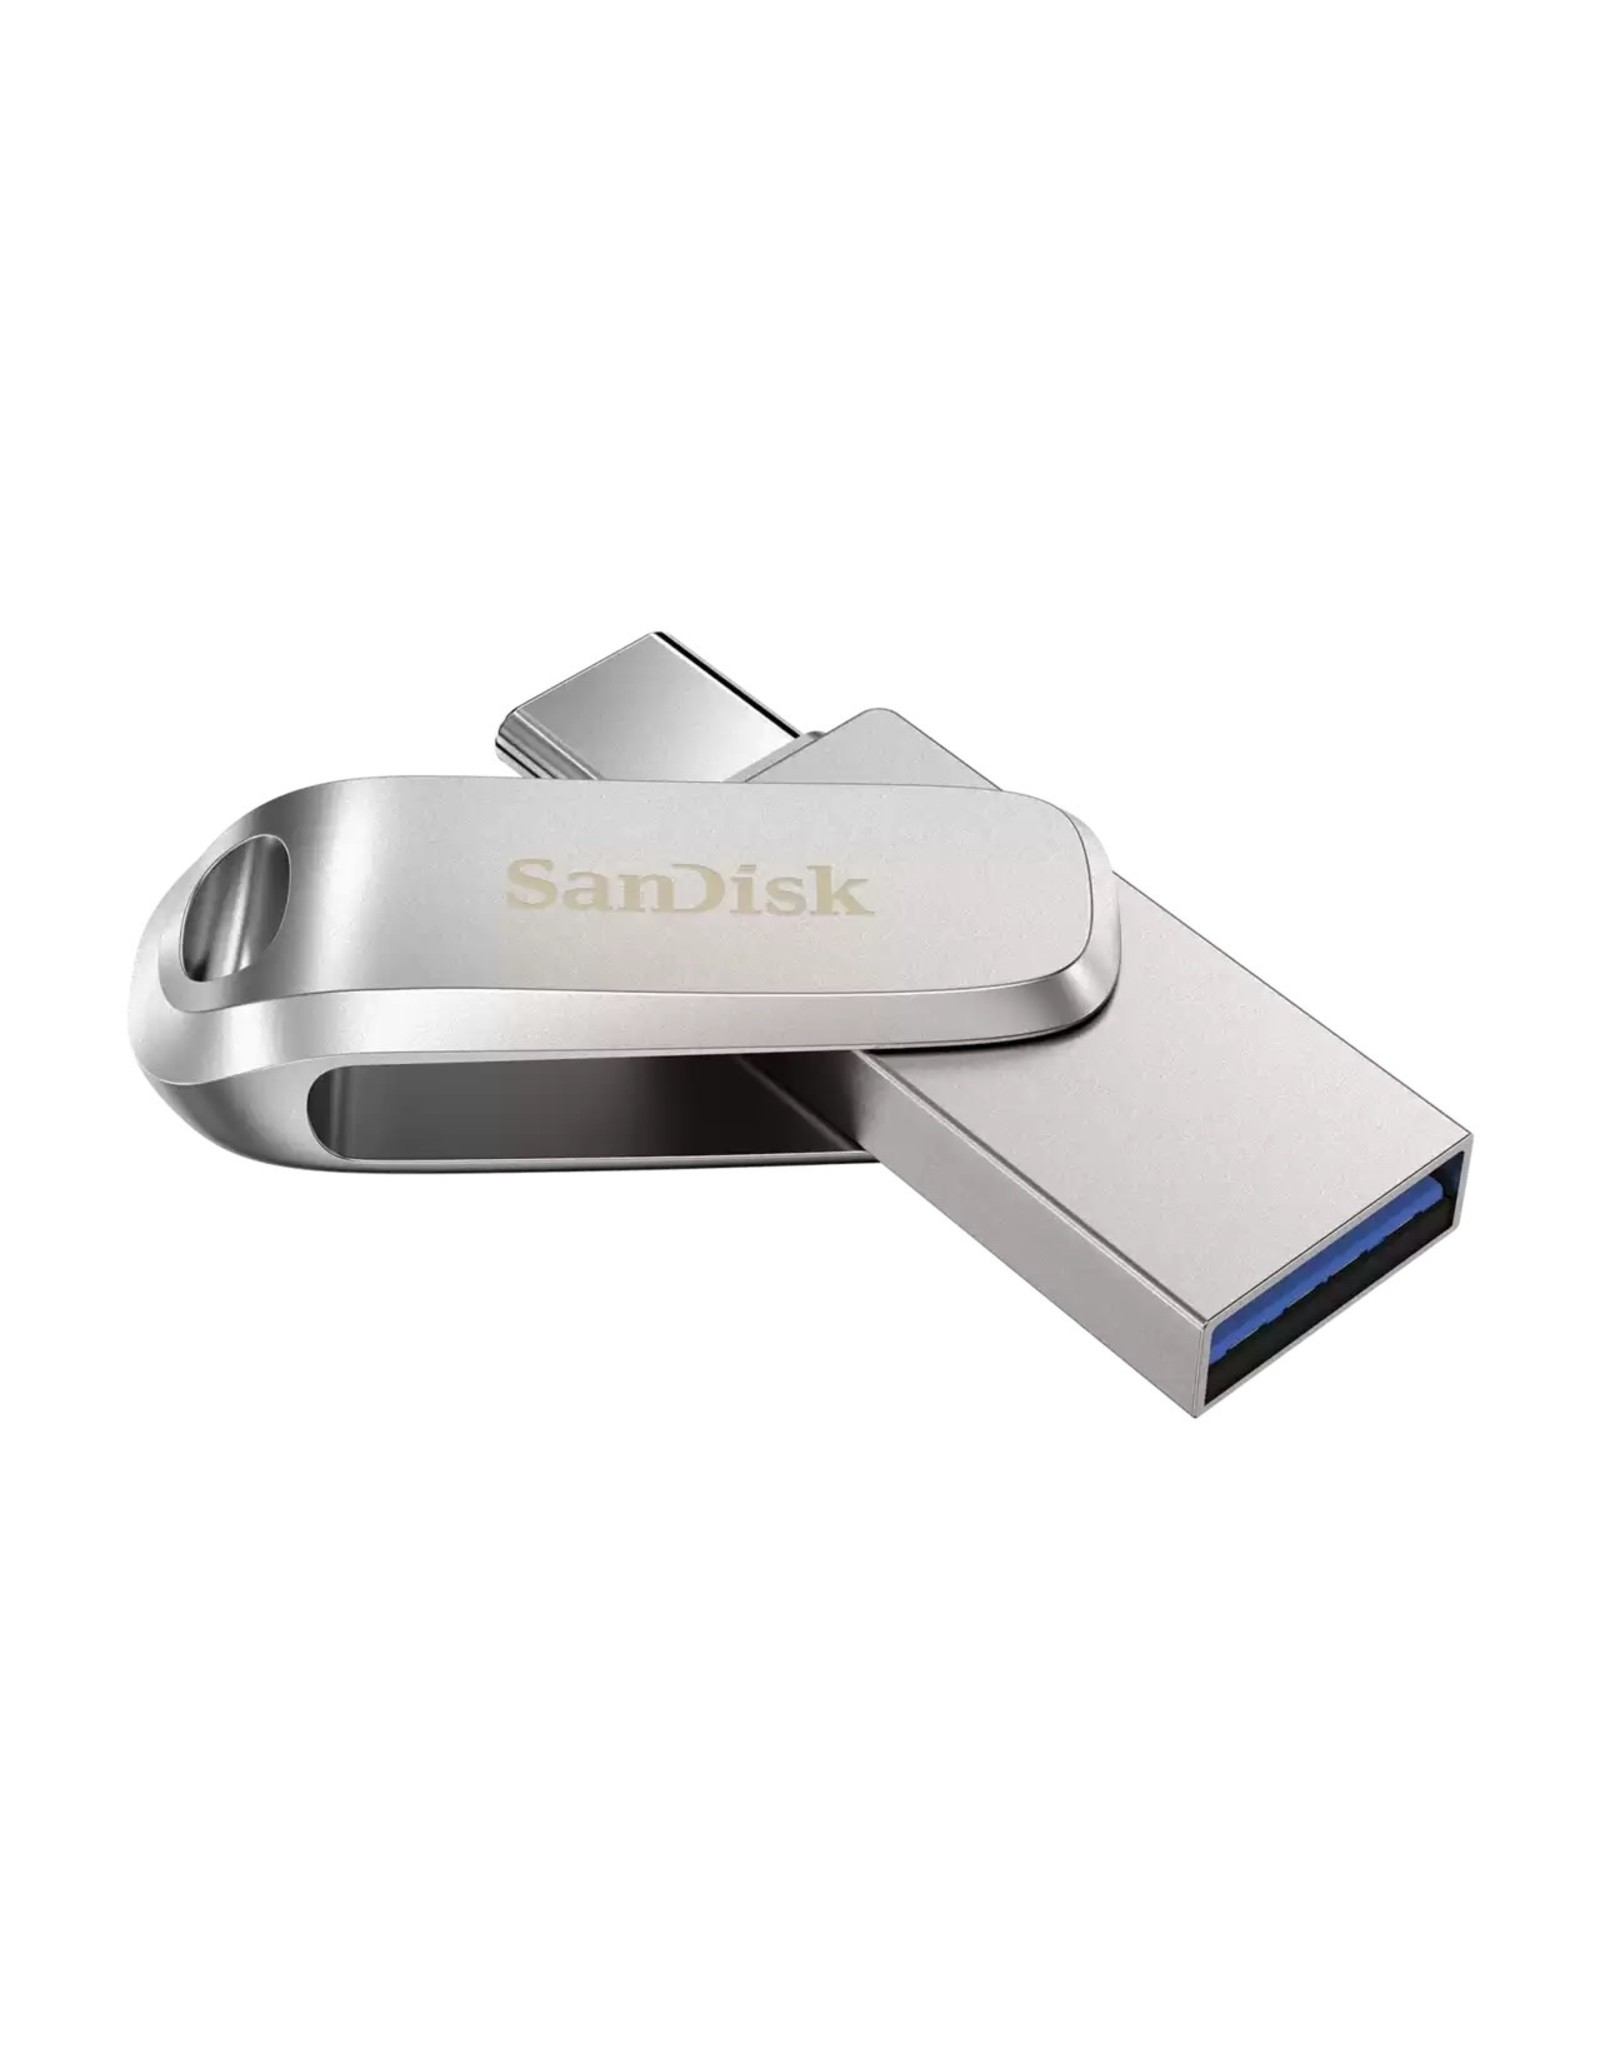 Sandisk SanDisk Ultra® 32GB Dual Drive Luxe USB-C and USB-A